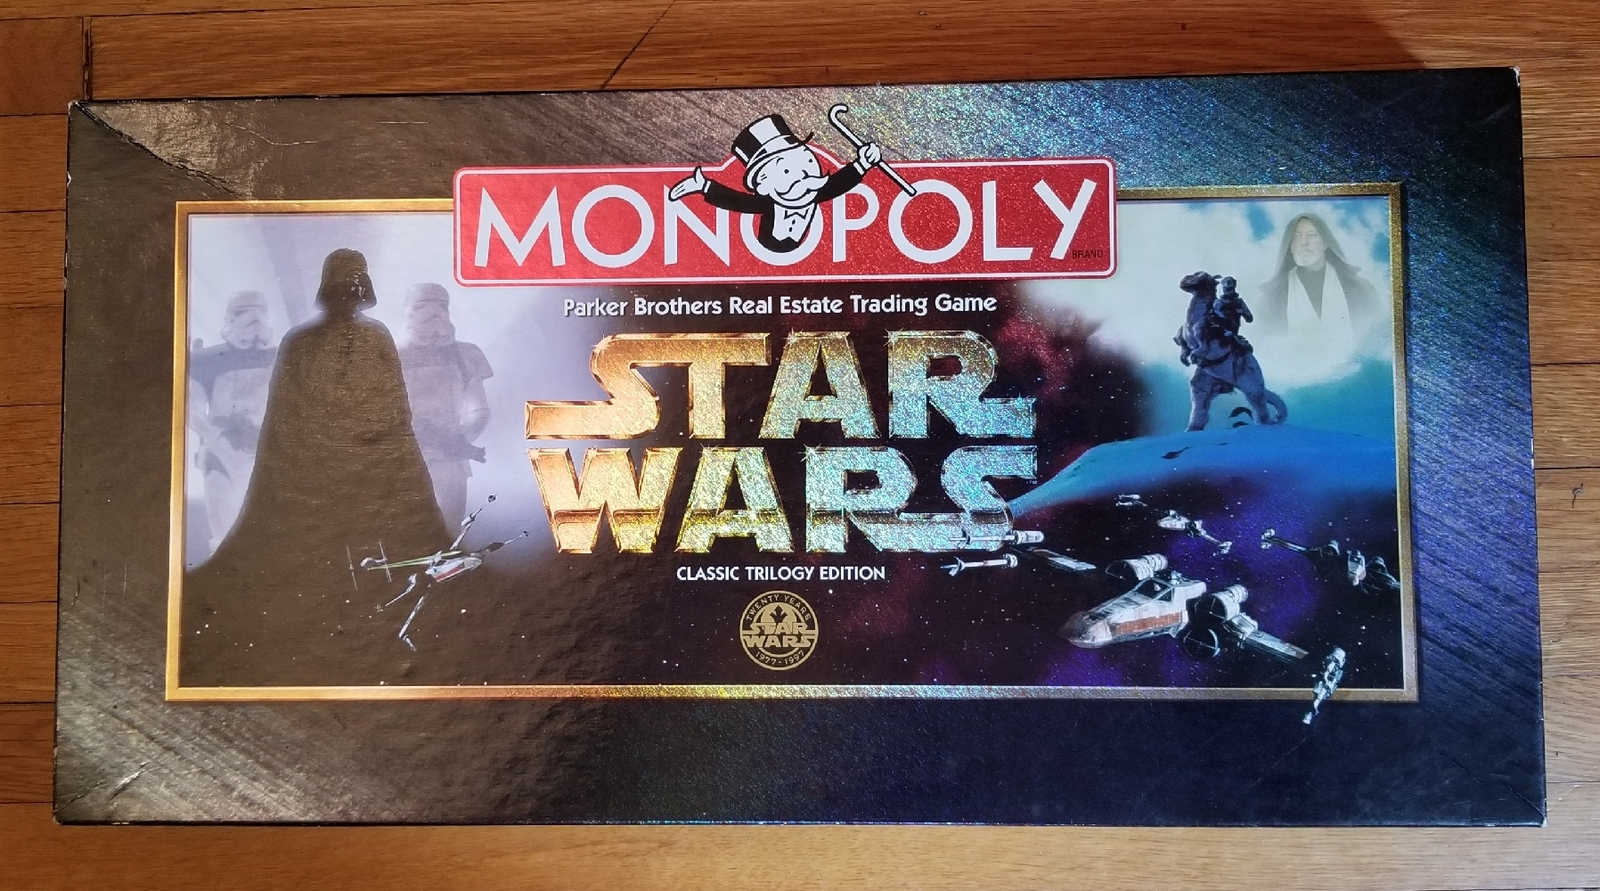 Primary image for MONOPOLY STAR WARS CLASSIC TRILOGY EDITION GAME 1997 PARKER BROTHERS #40809 COMP